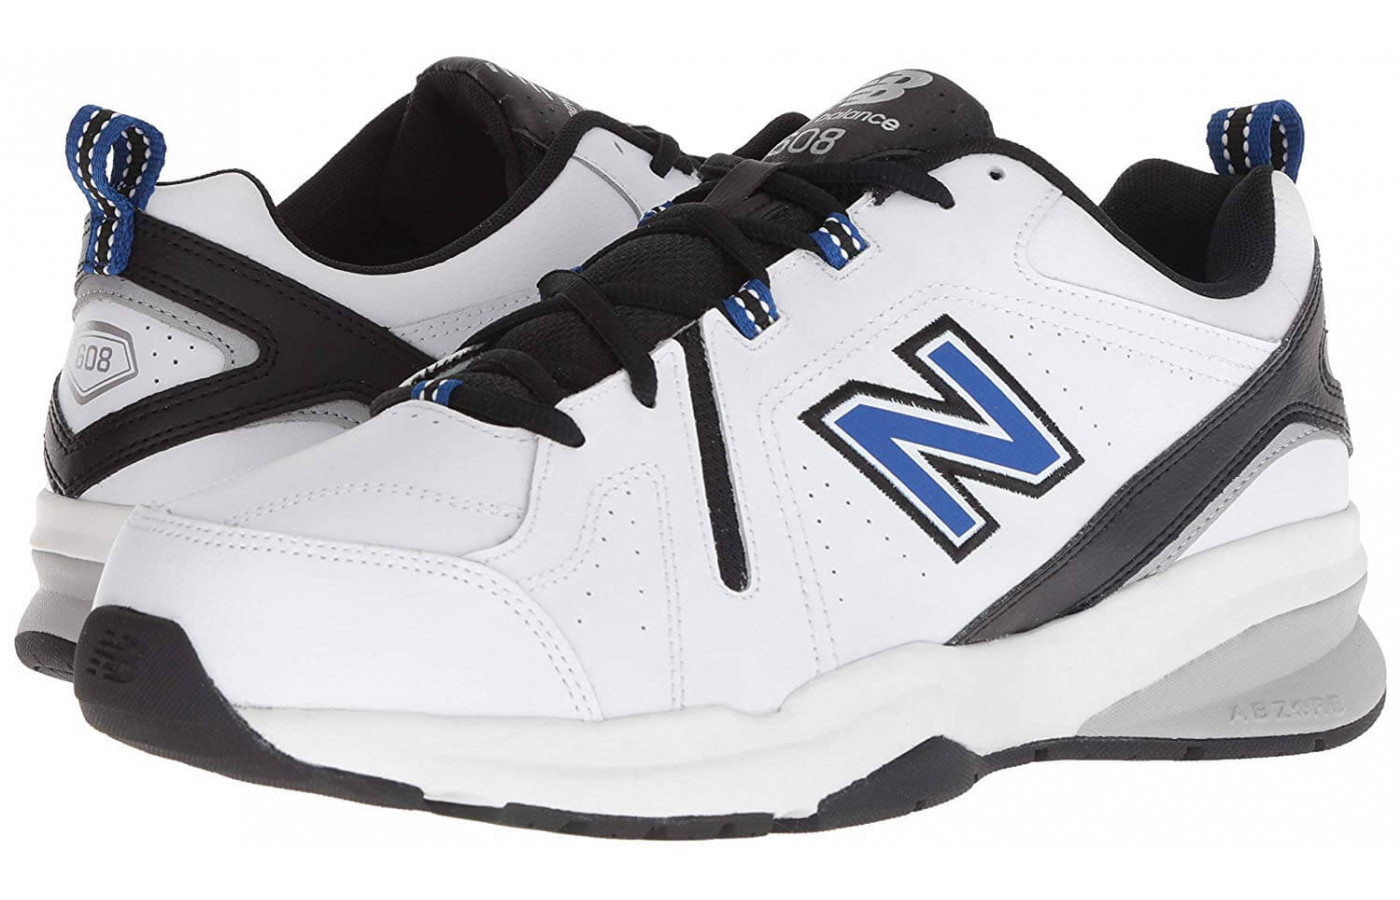 New Balance 608v5 left right